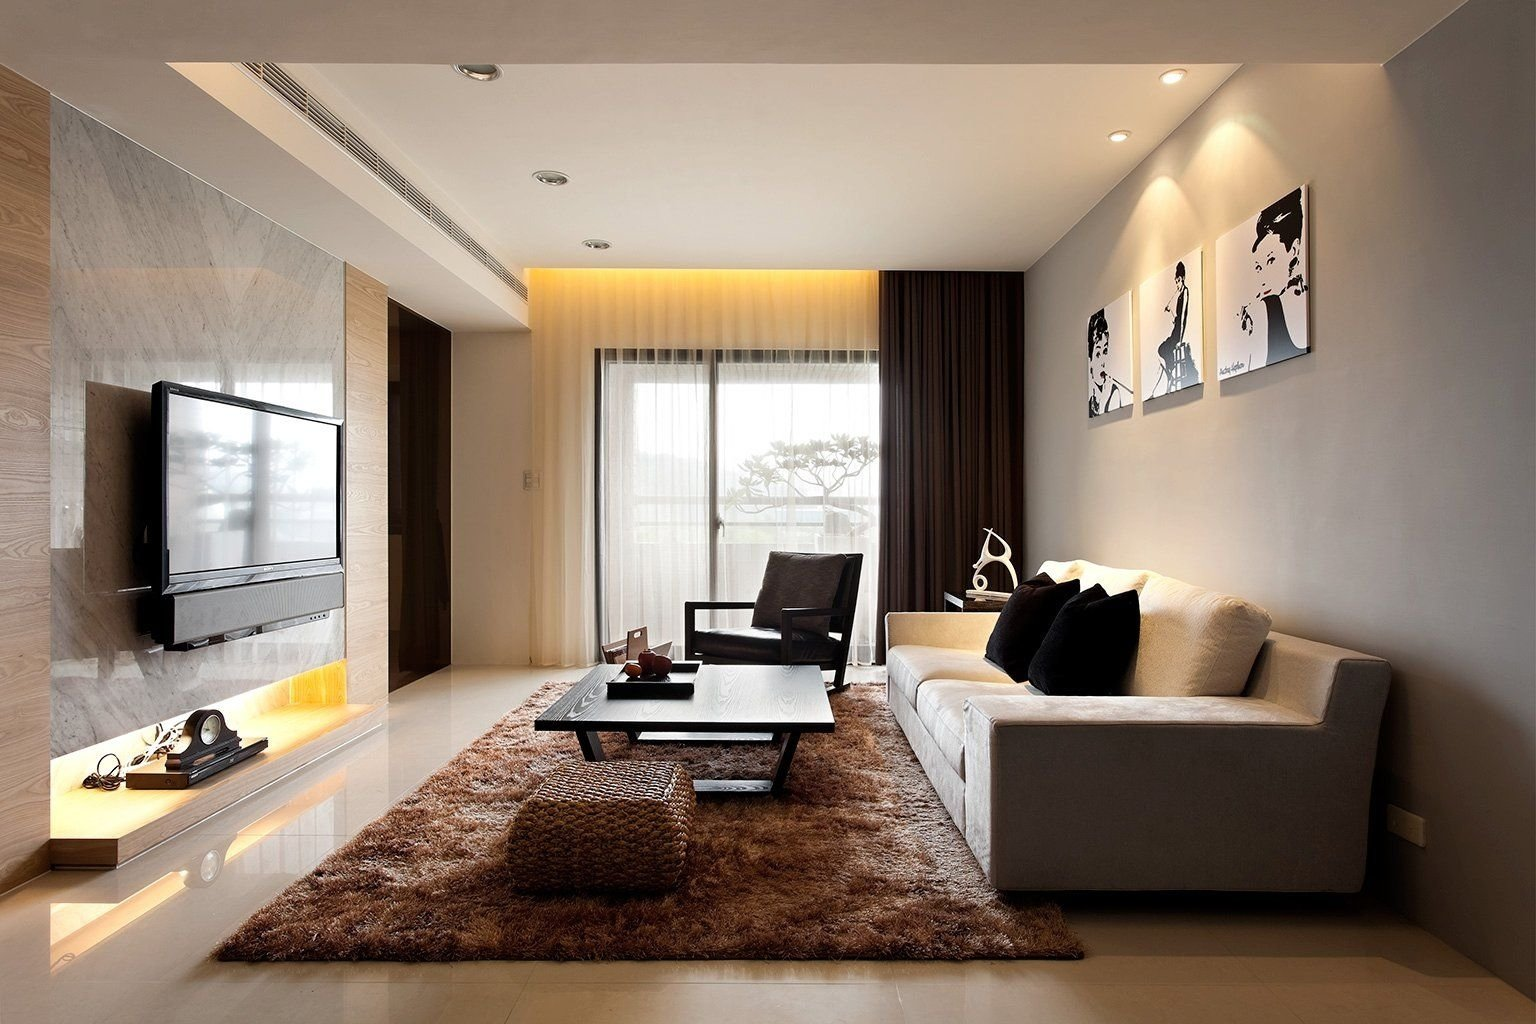 10 Amazing Narrow Living Room Design Ideas excellent living room arrangements for long narrow rooms 21 about 2020